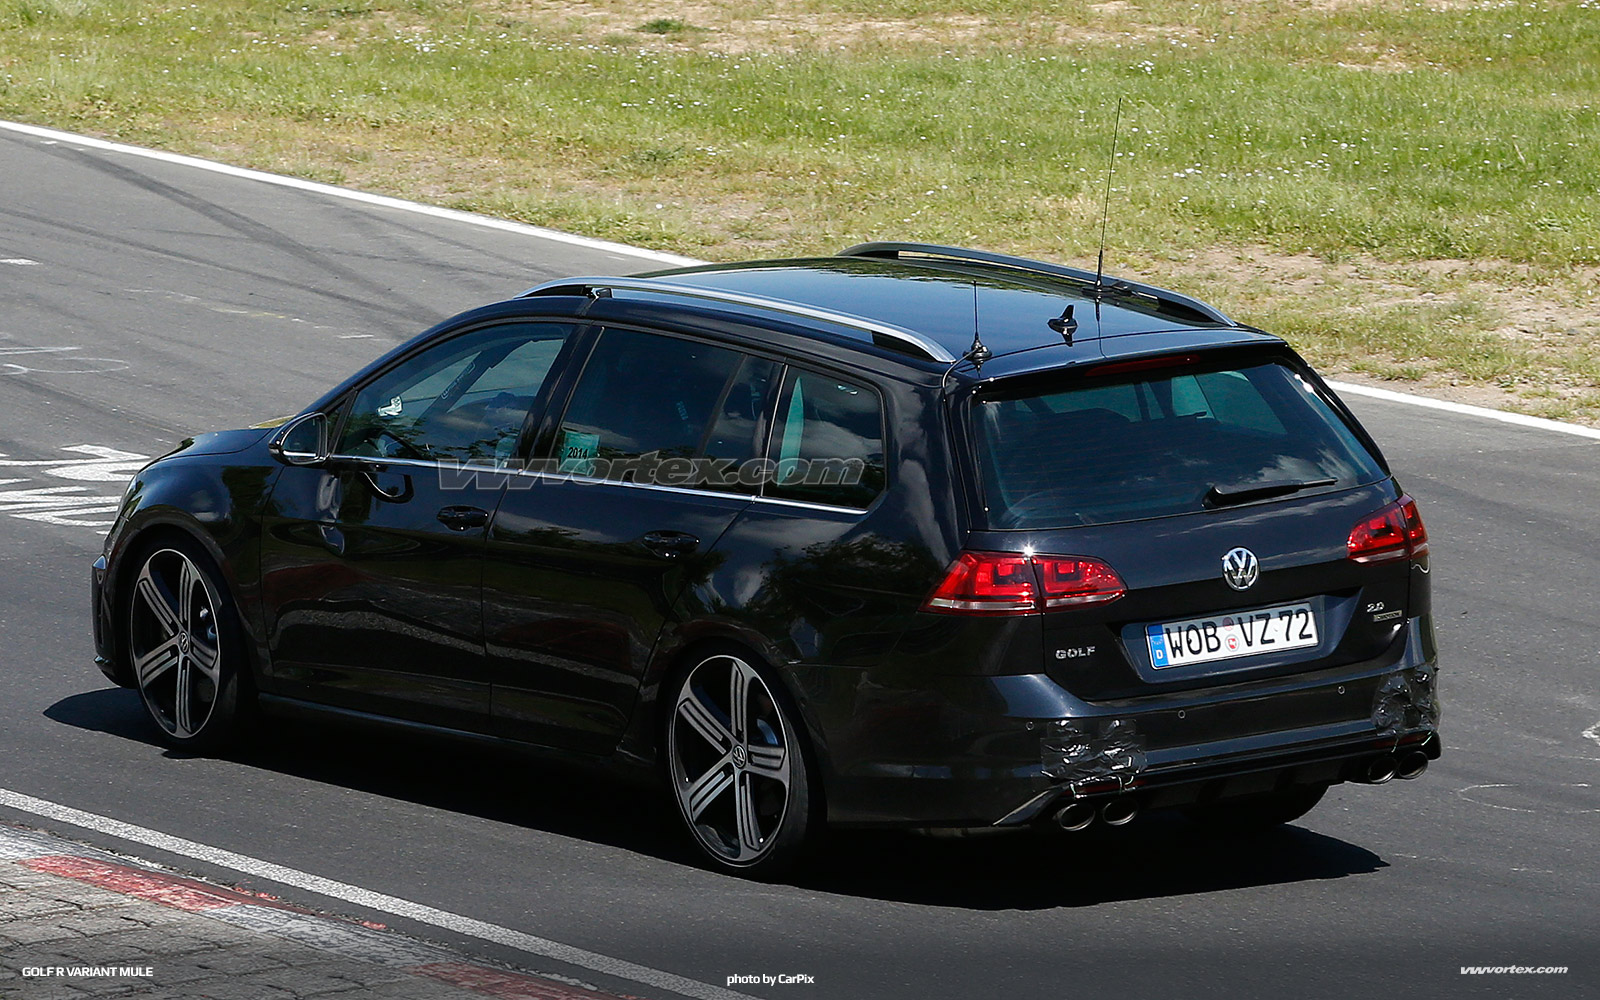 vw-golf-r-variant-mule-384